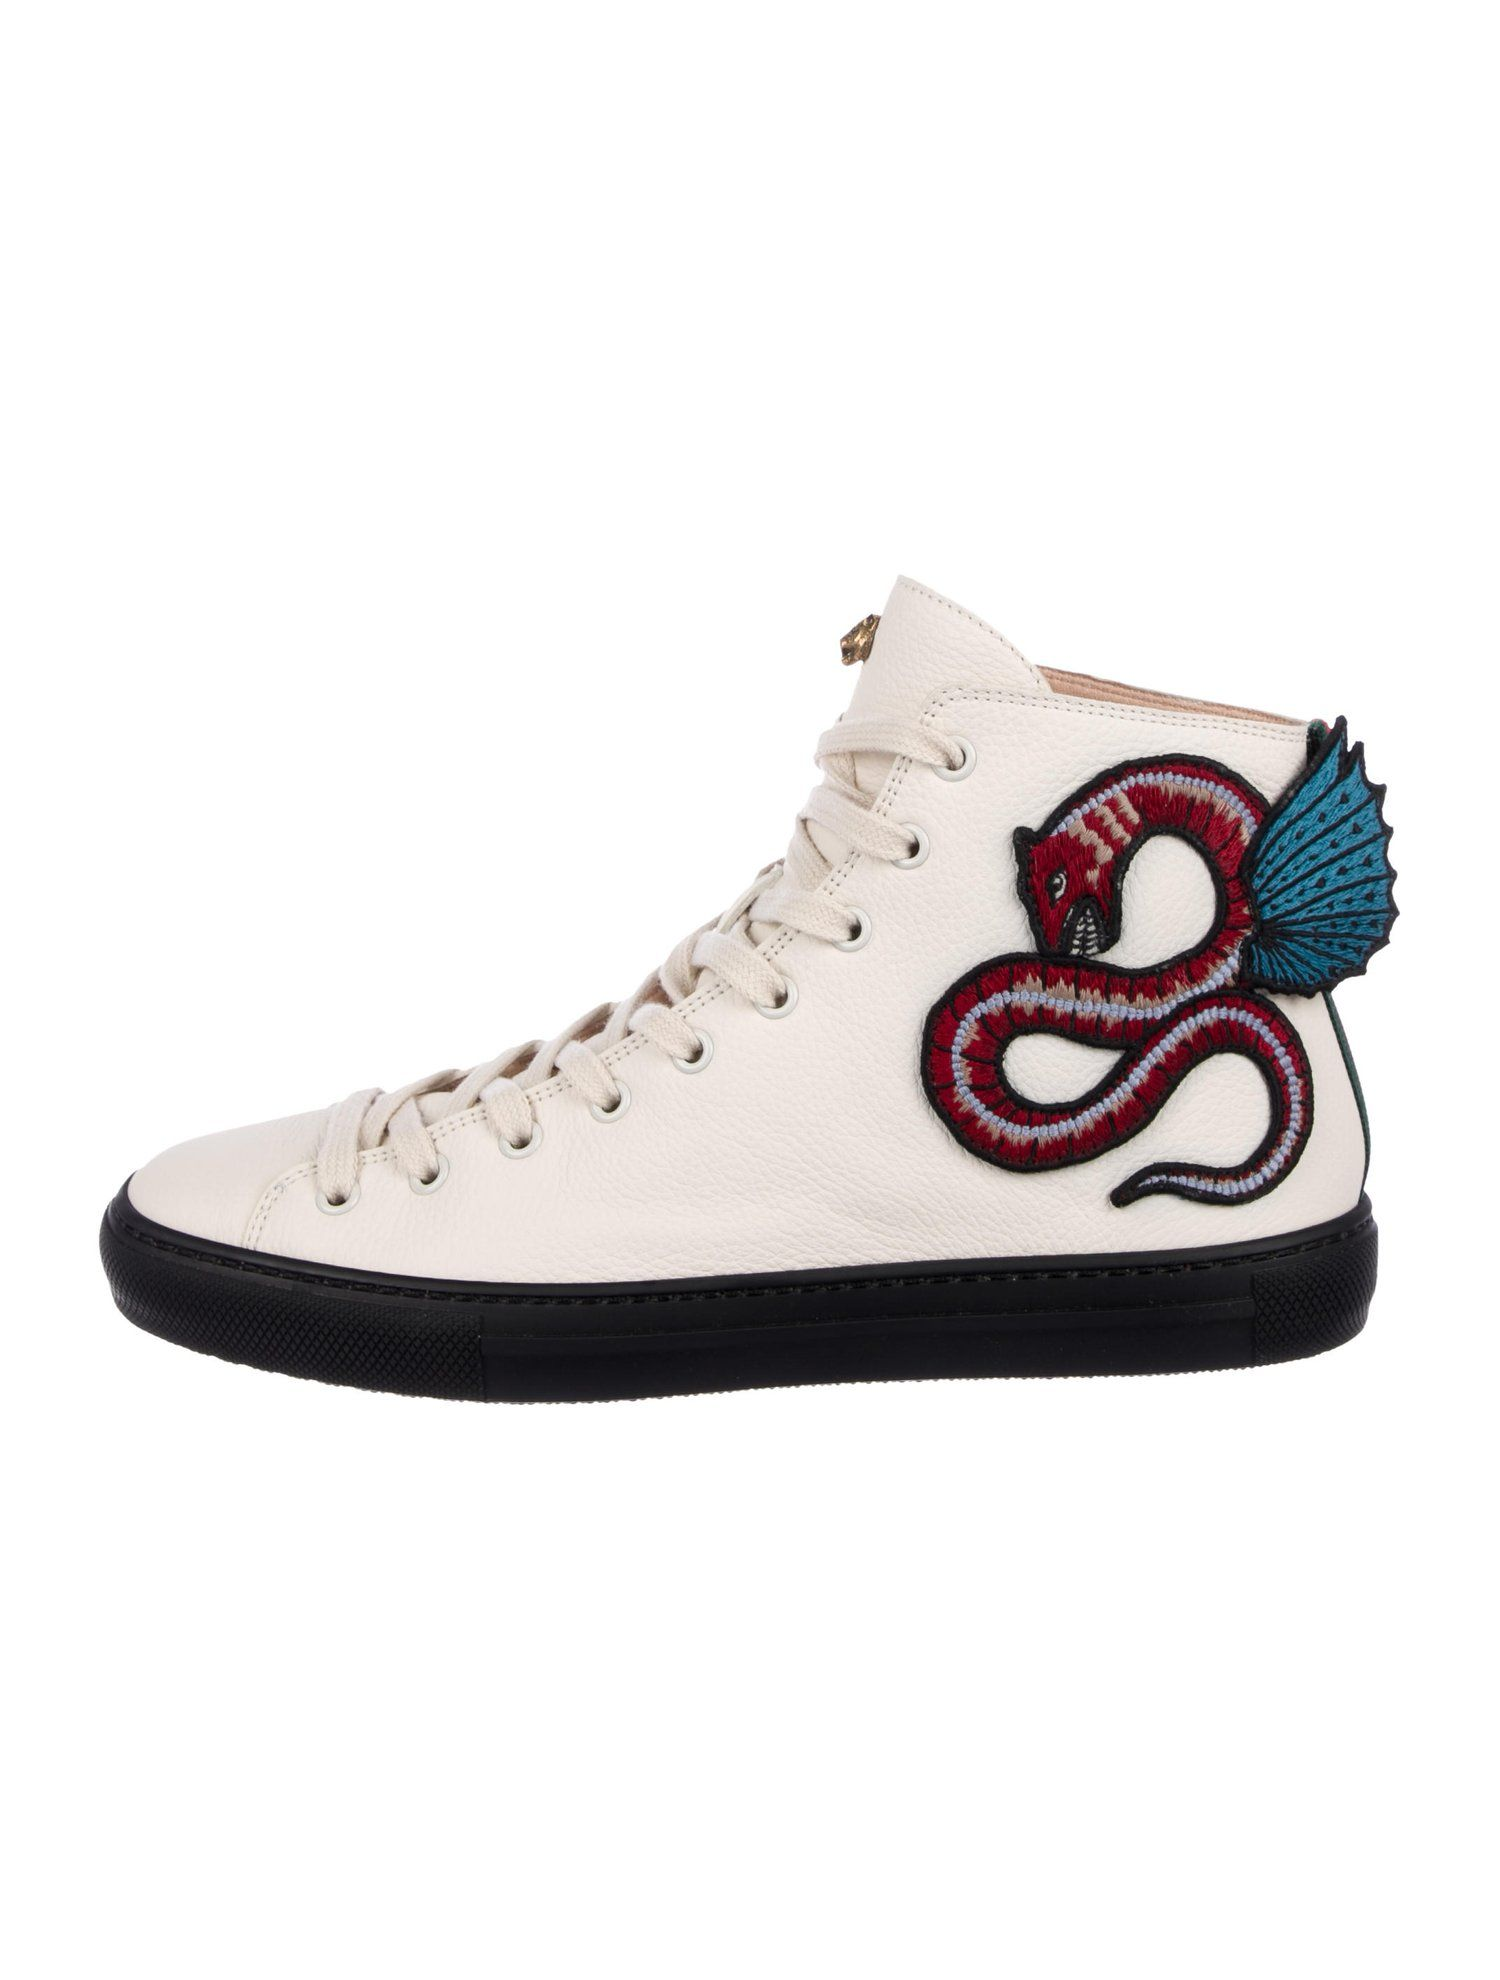 Sneakers #Dragon #Winged #Gucci